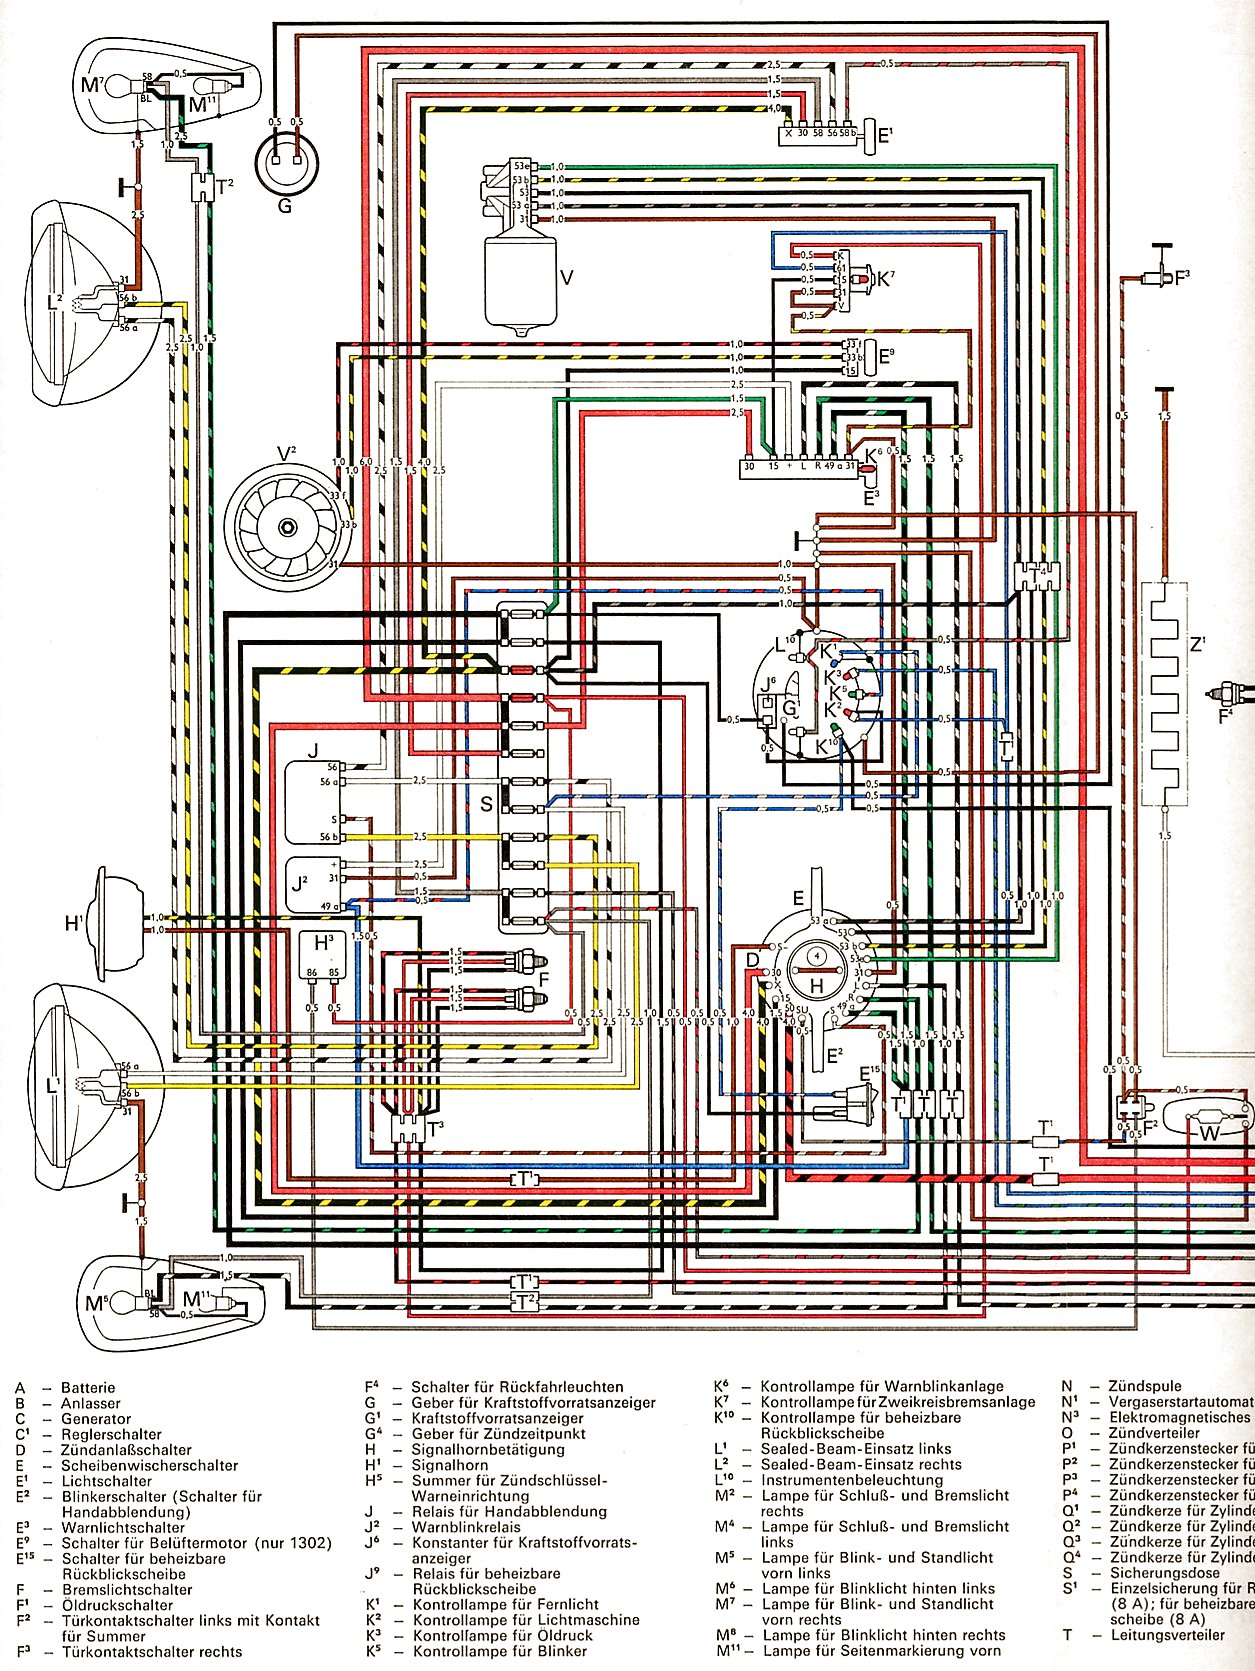 1300_and_1302_USA_from_August_1971 1 wiring help 1974 vw beetle shoptalkforums com 1974 Super Beetle Wiring Diagram at reclaimingppi.co